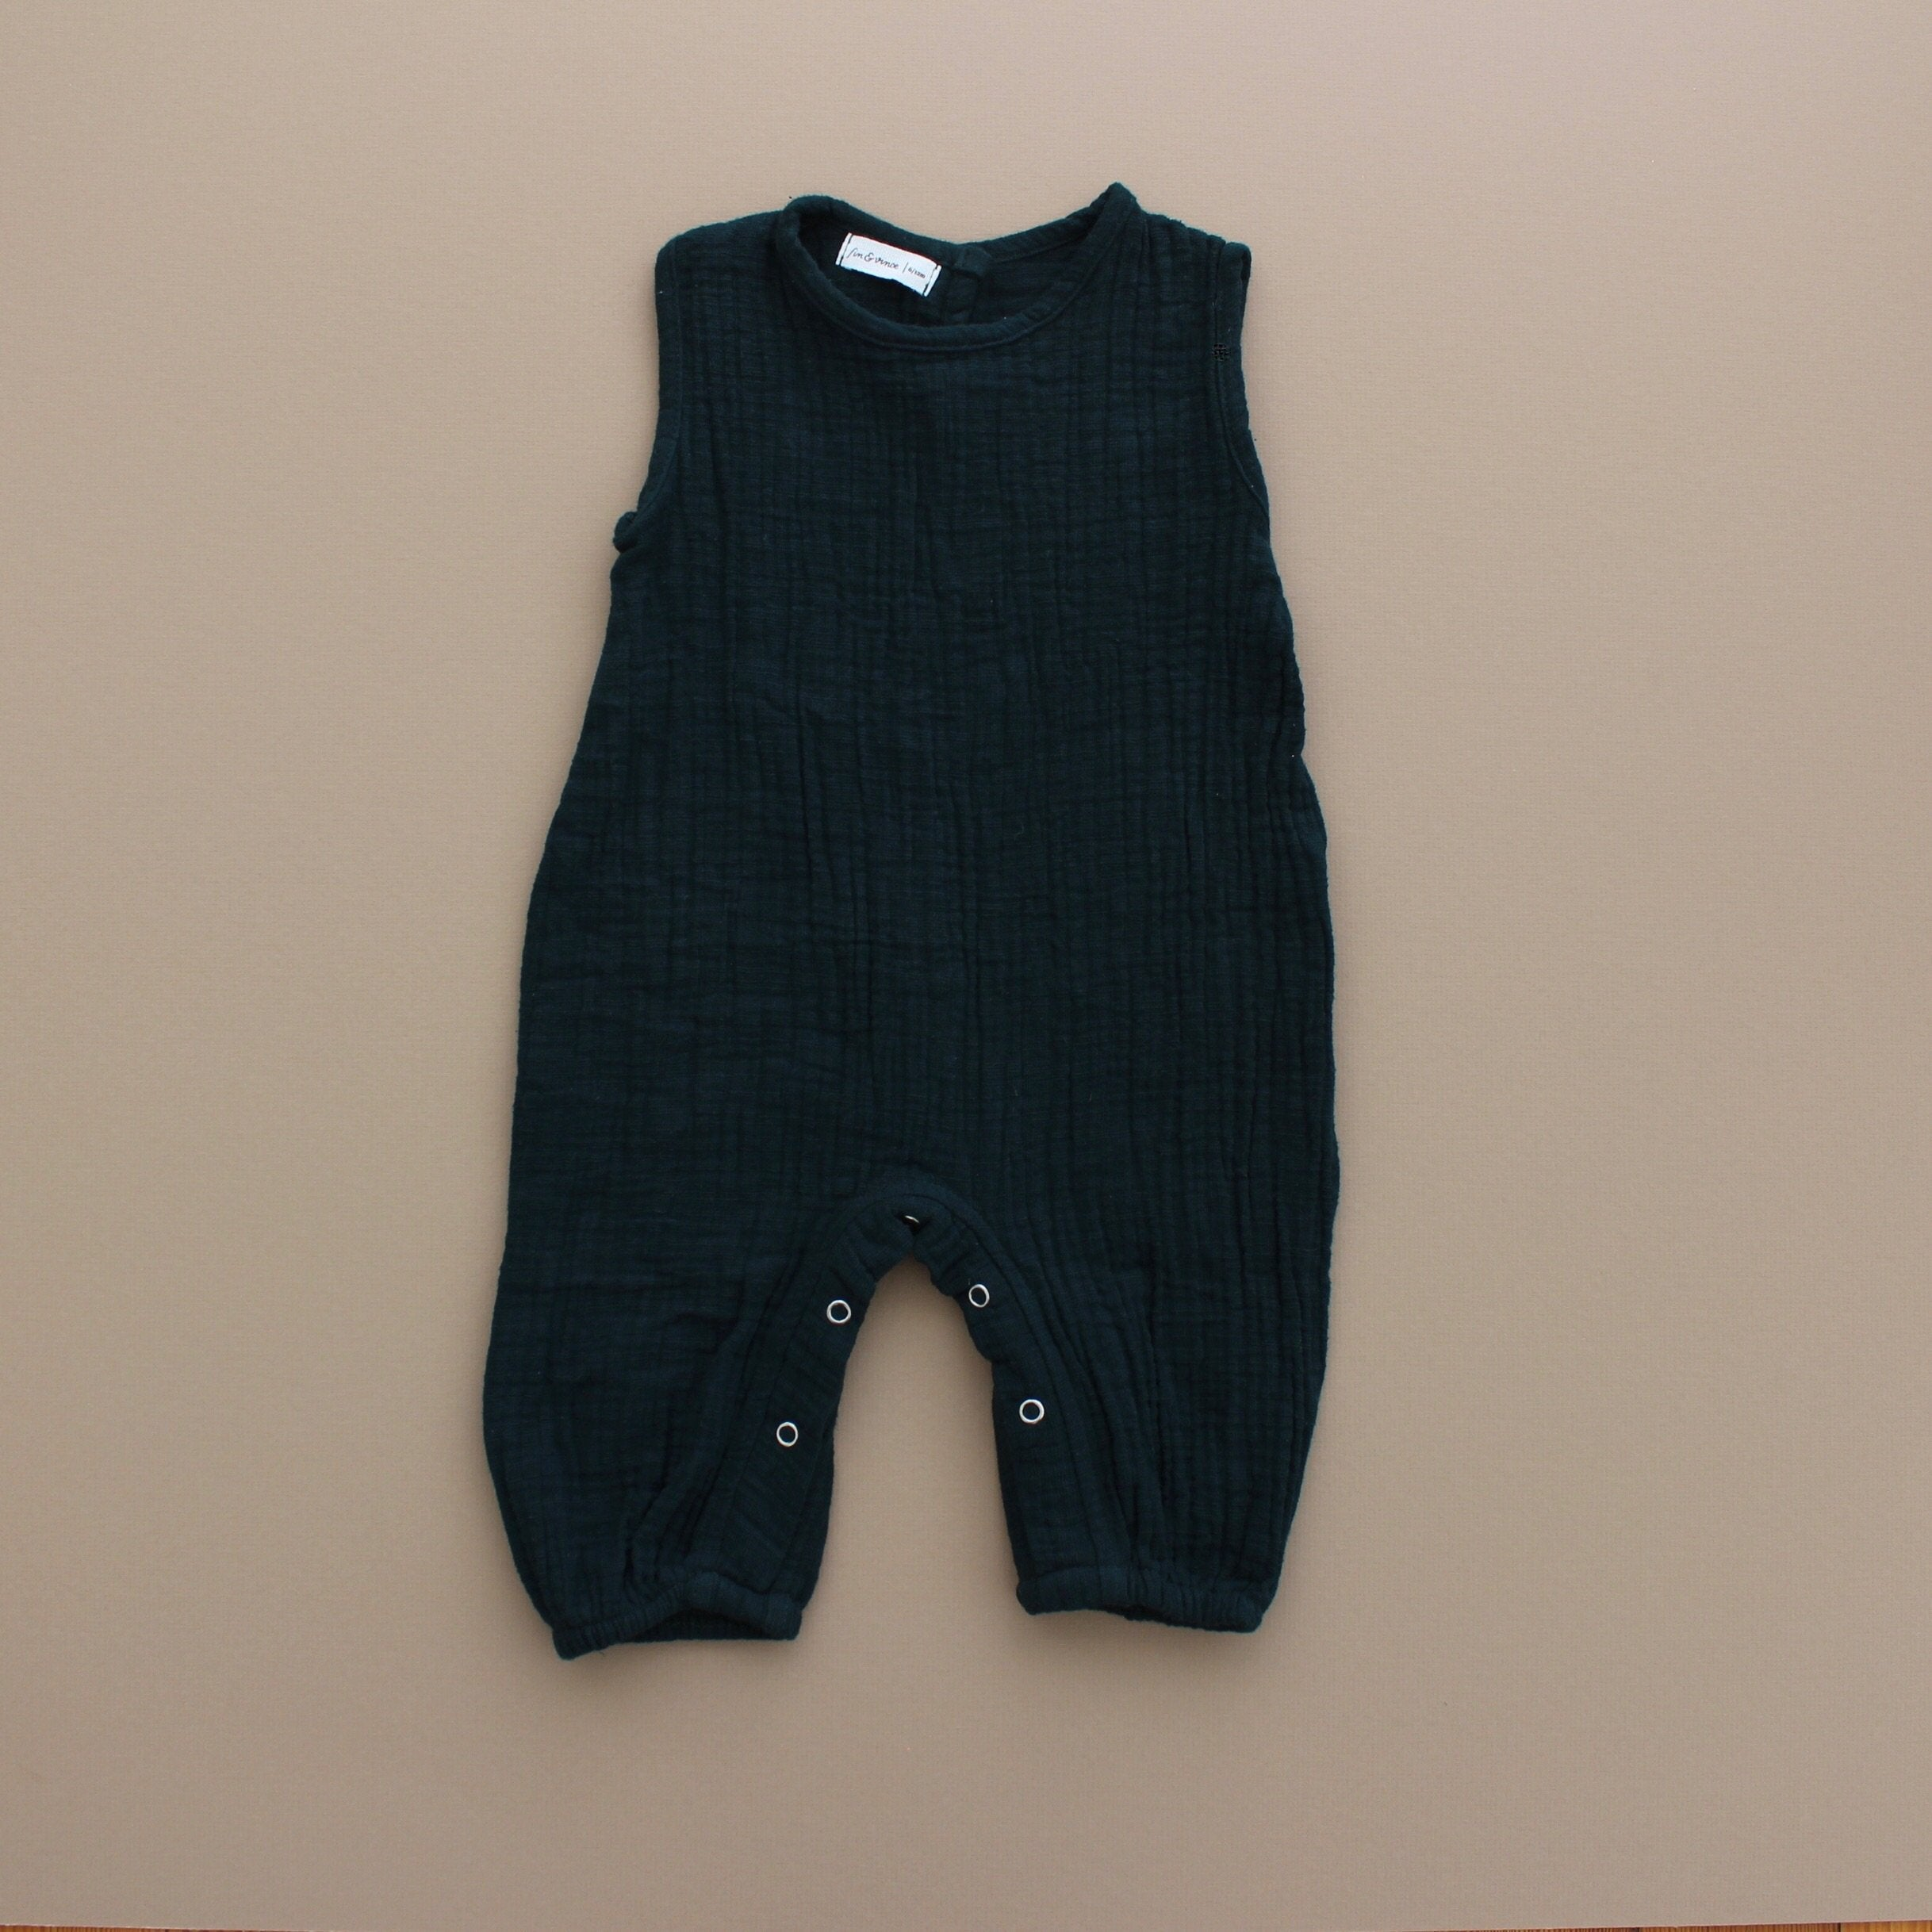 Fin and Vince - Tank Romper (Gauze - Forest) - Last 0/3